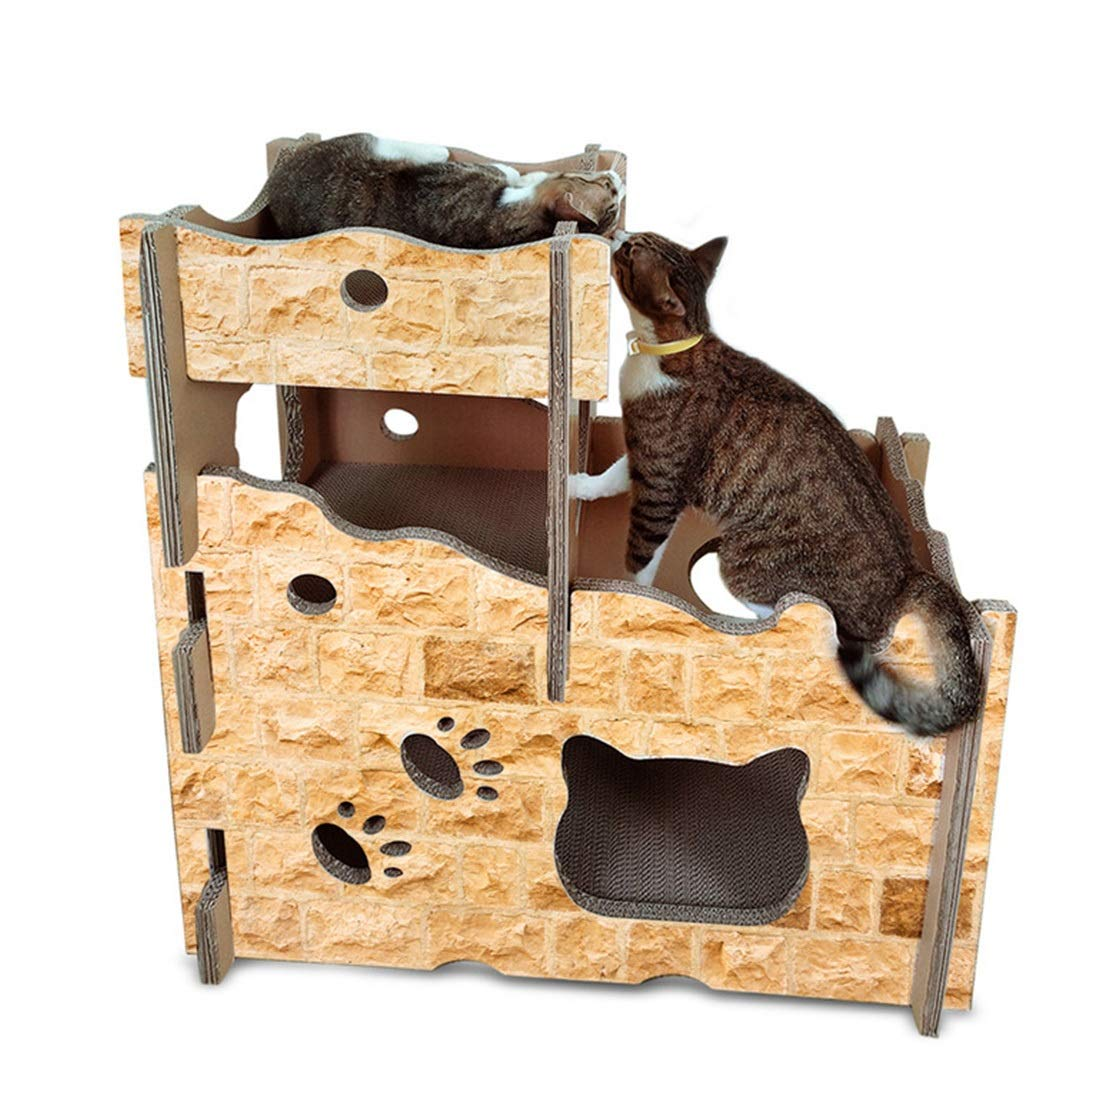 Castle Cat House Hyue Cat House Cat Scratch Board Corrugated Paper Climbing Frame Cat Litter, Cat Castle Indoor and Outdoor cat House (color   Castle Cat House)